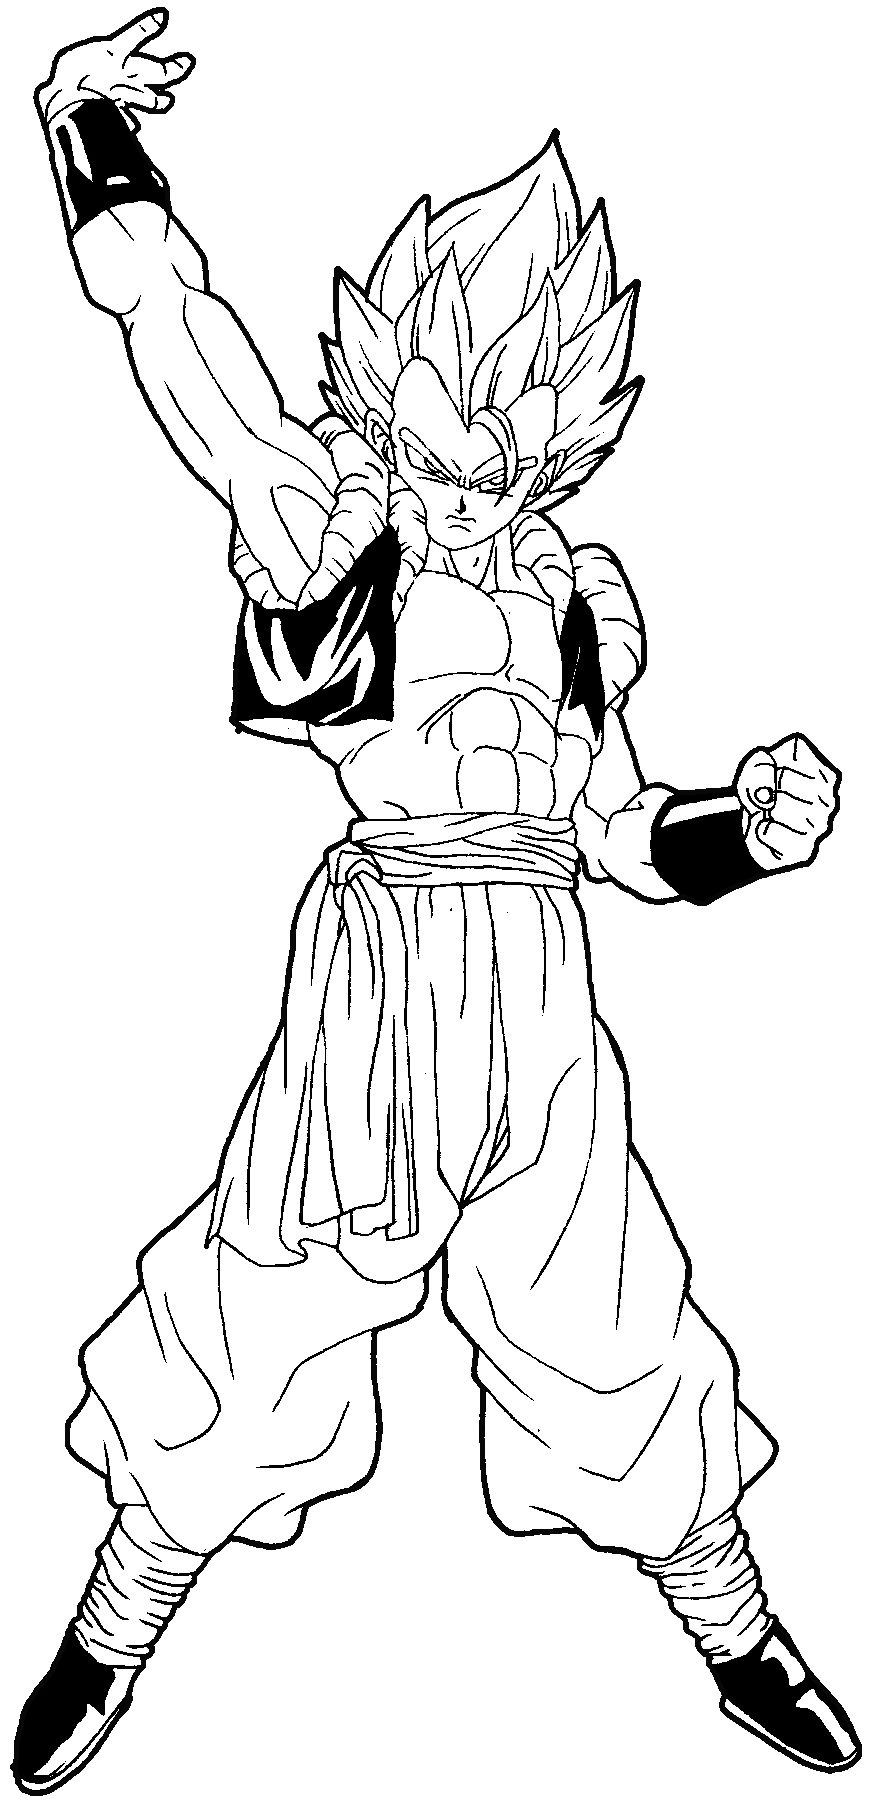 how to draw dragon ball z dragon ball z drawing at getdrawings free download to dragon z draw how ball